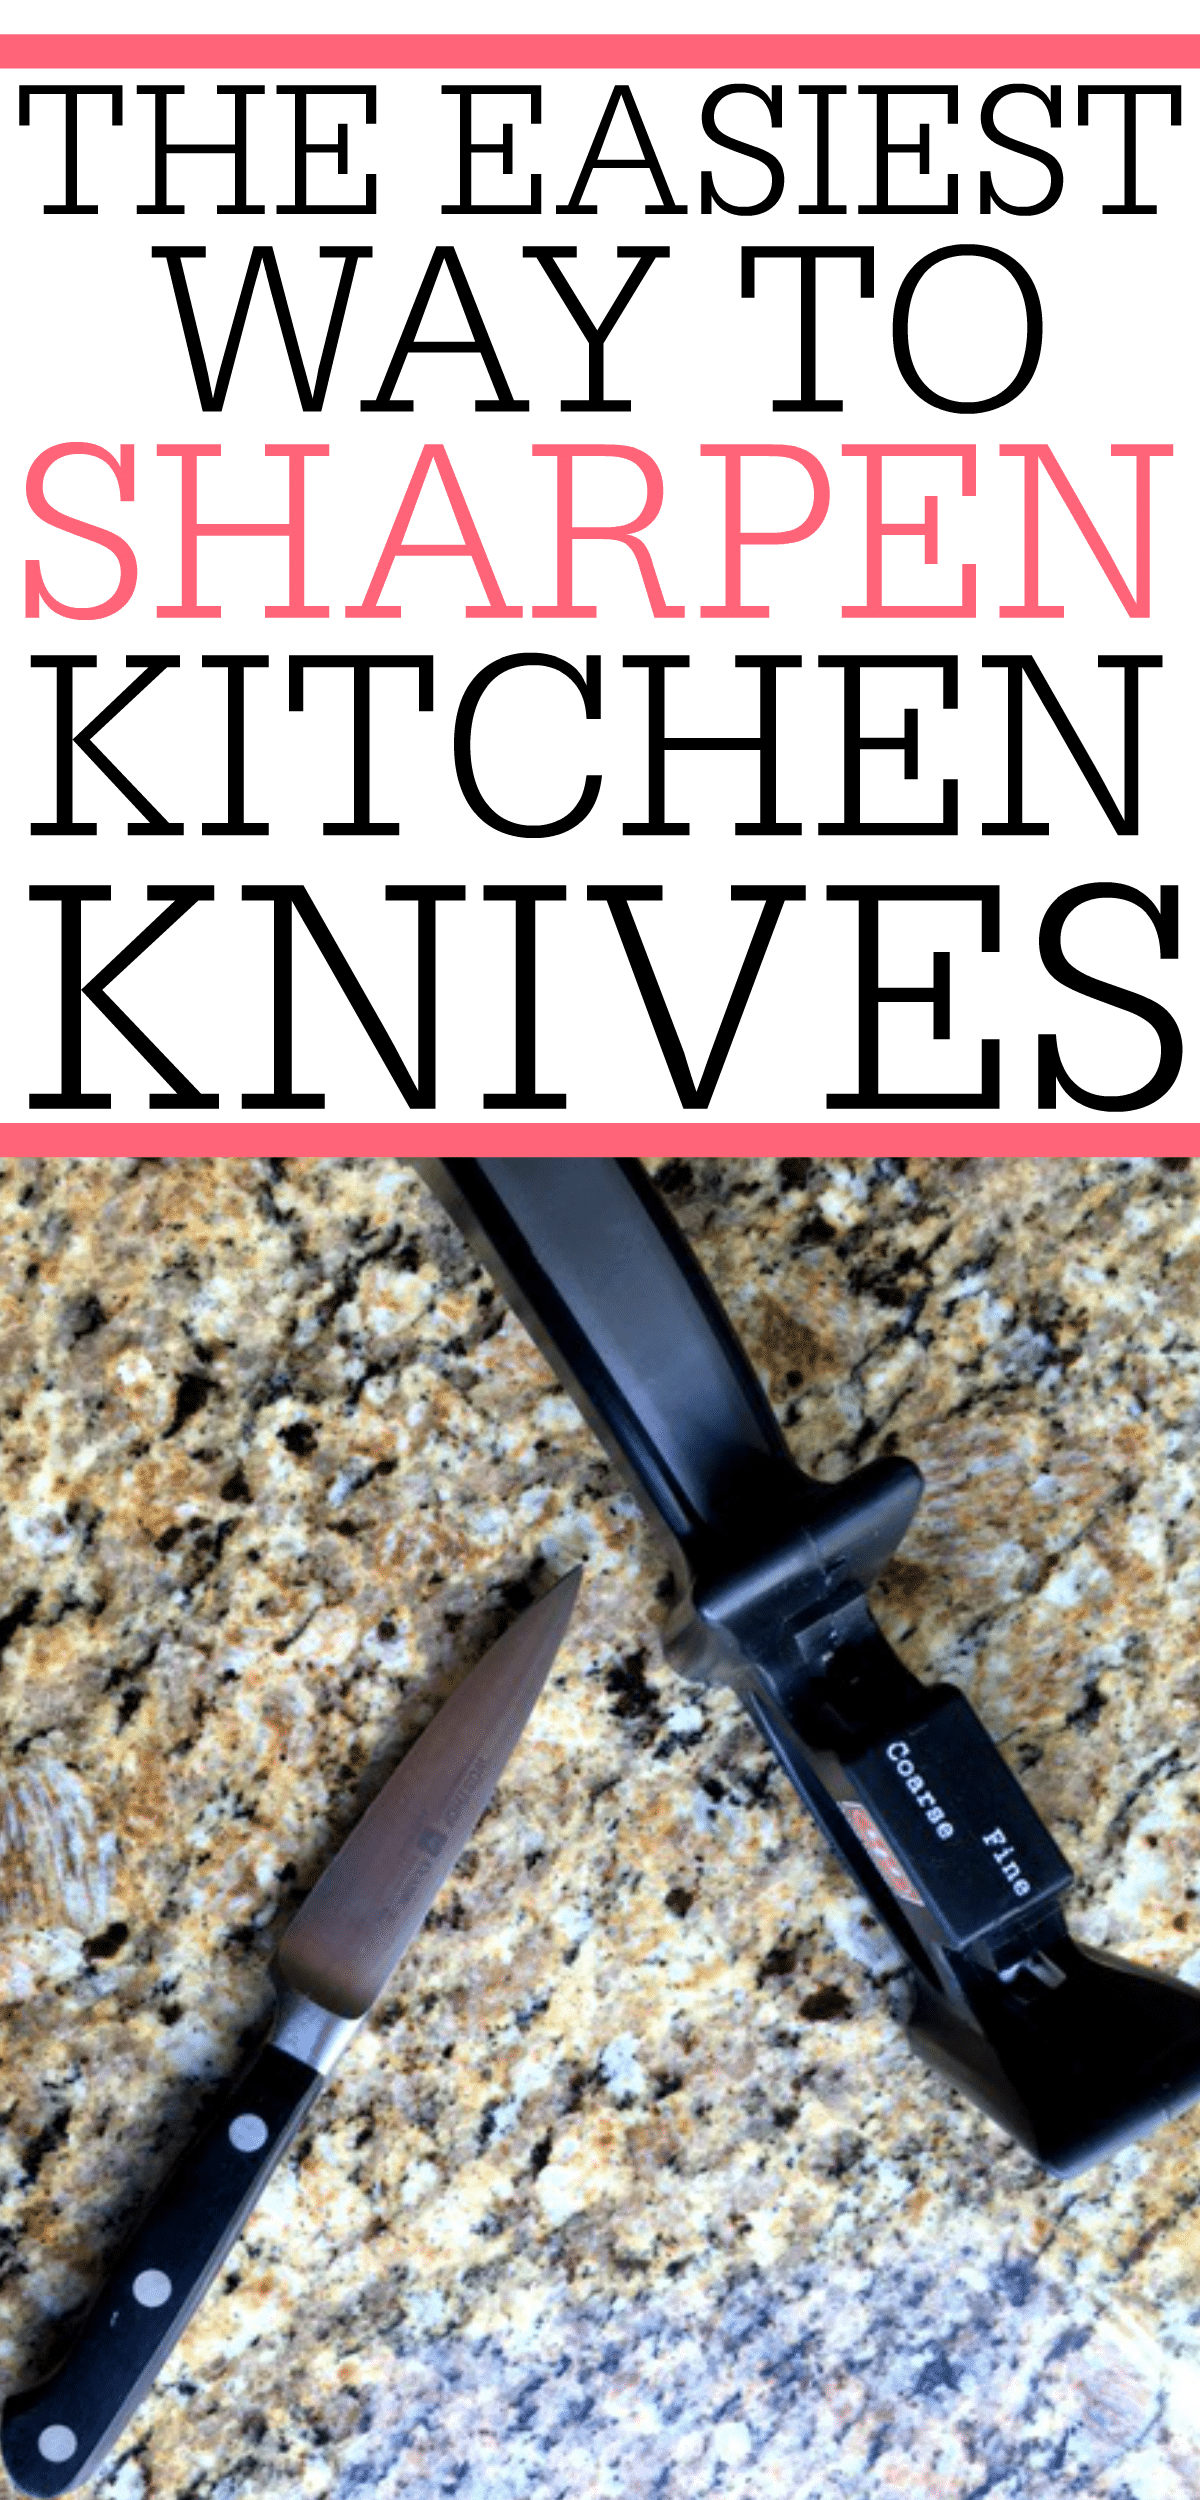 Easy Way To Contour Your Face: The Easiest Way To Sharpen Kitchen Knives